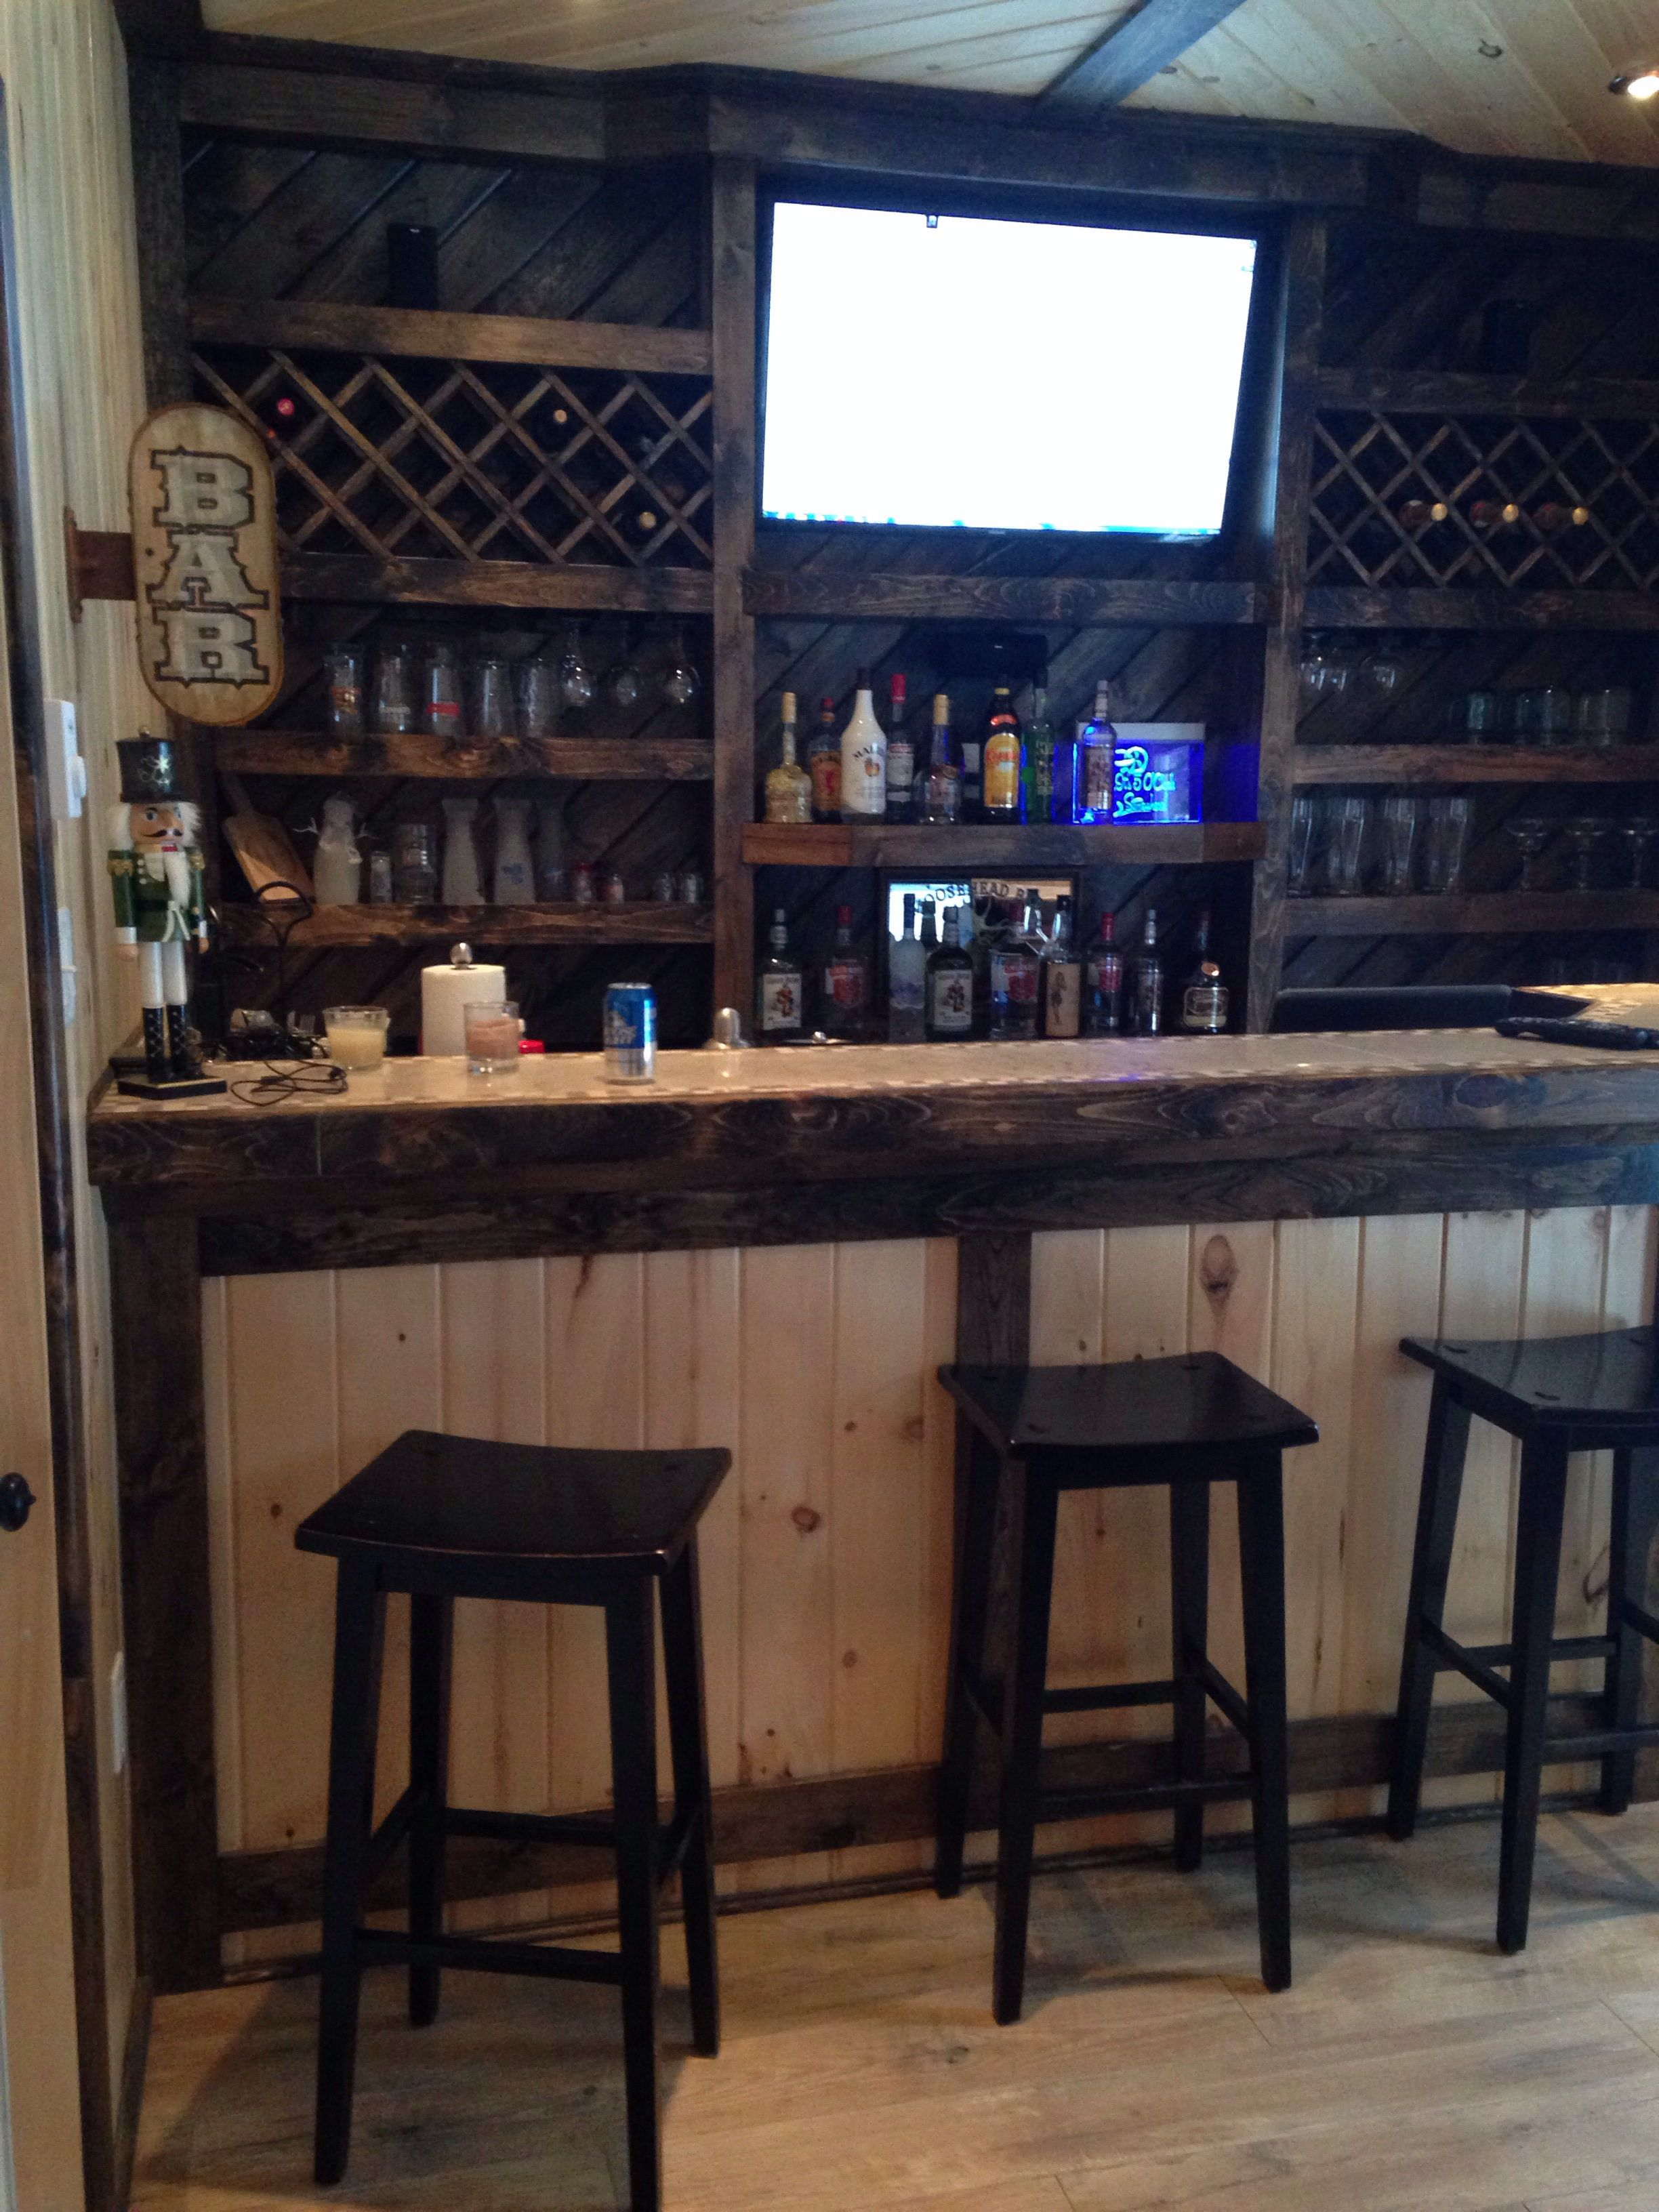 Garage Man Cave Extension Garage Bar Idea For The Hubby S Man Cave Like This But How Would